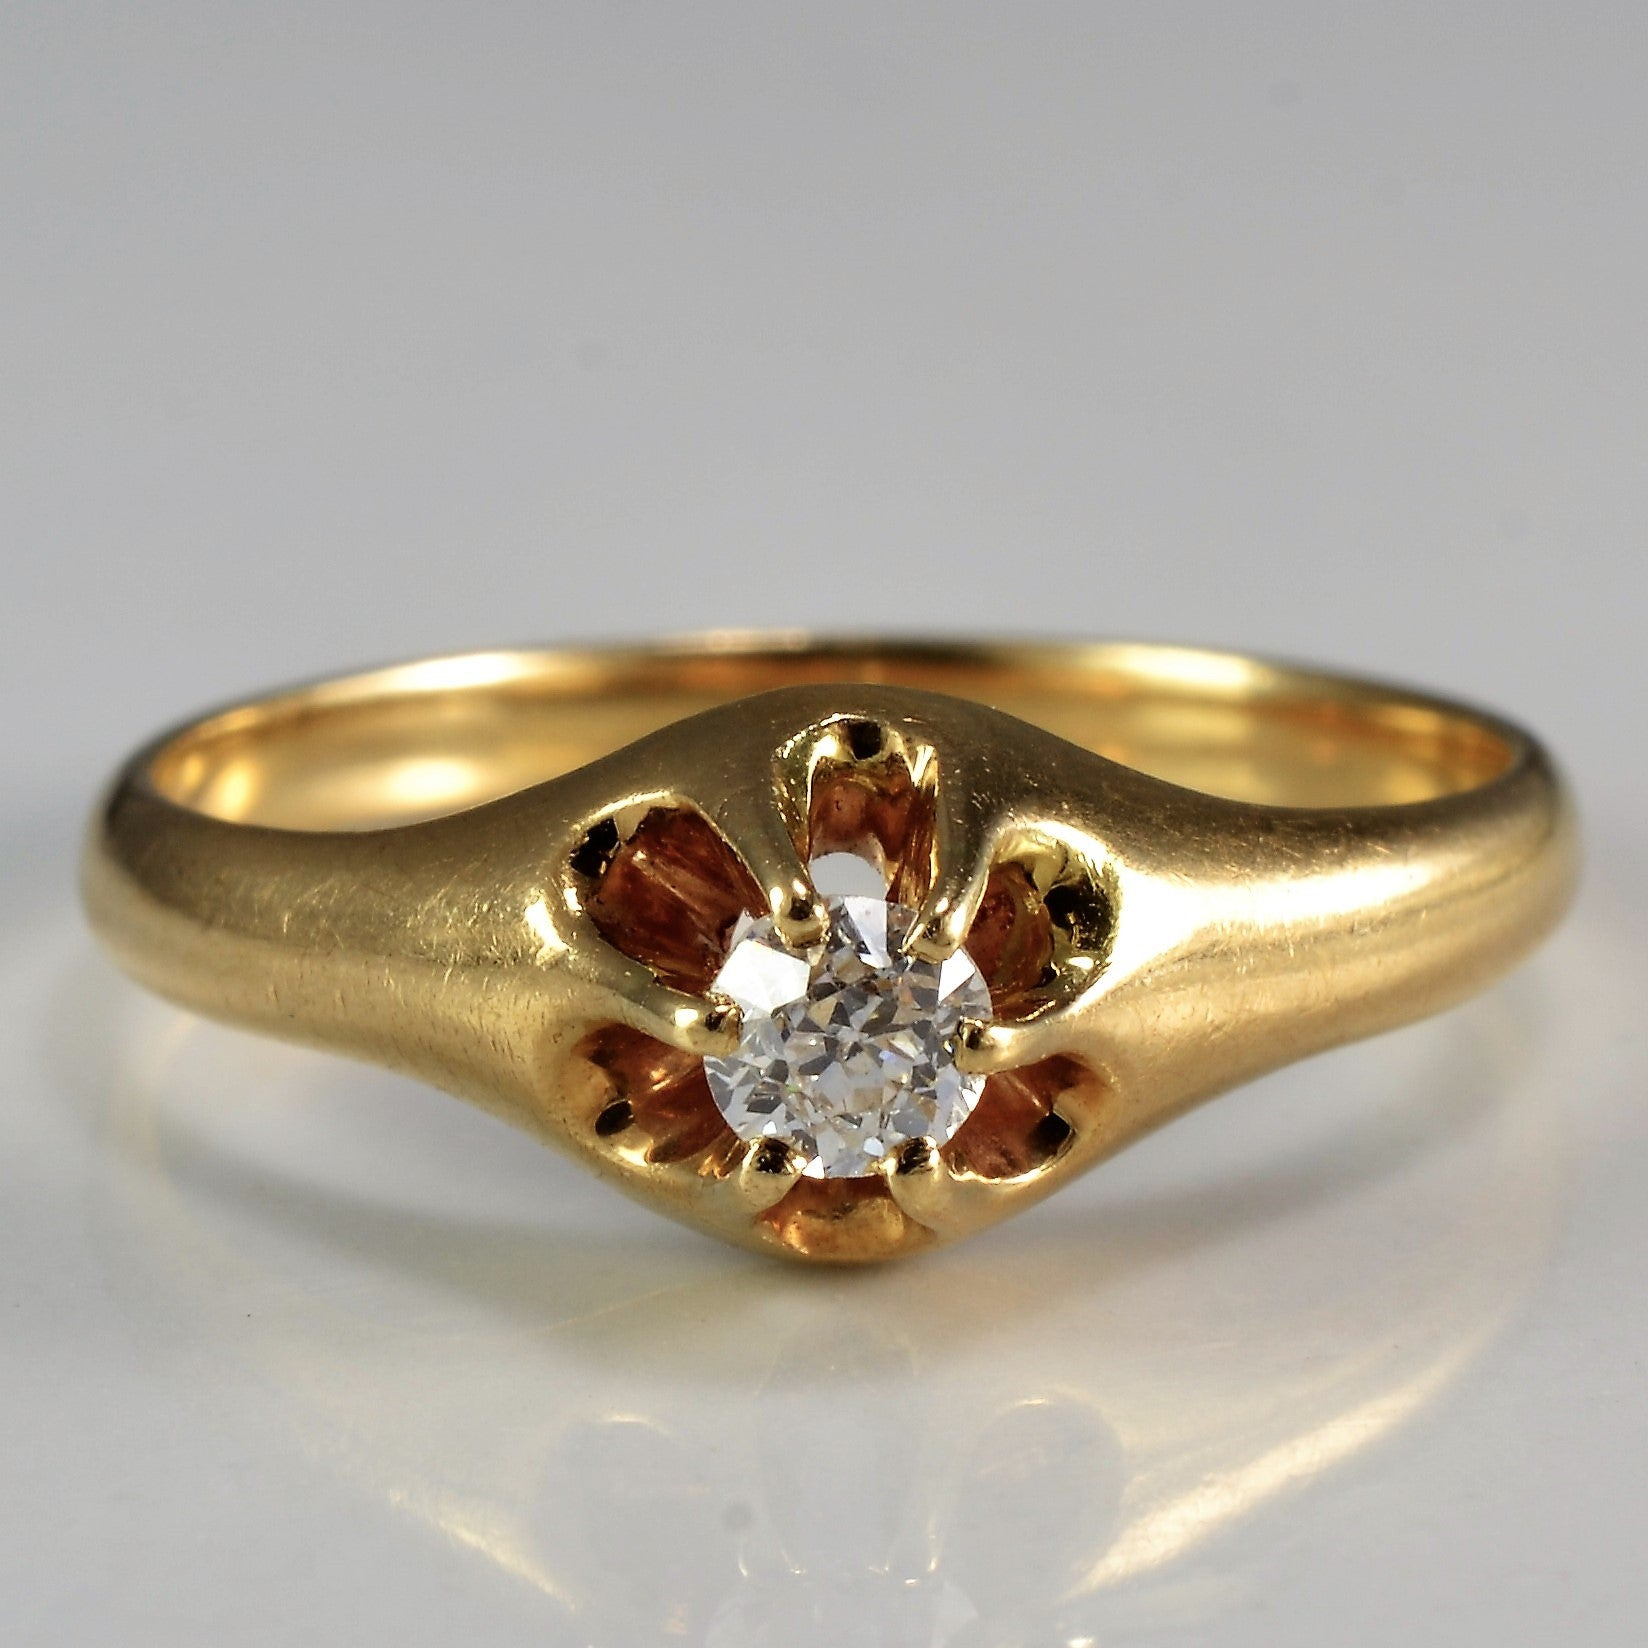 Simple Victorian Era Solitaire Engagement Ring | 0.12 ct, SZ 5 |